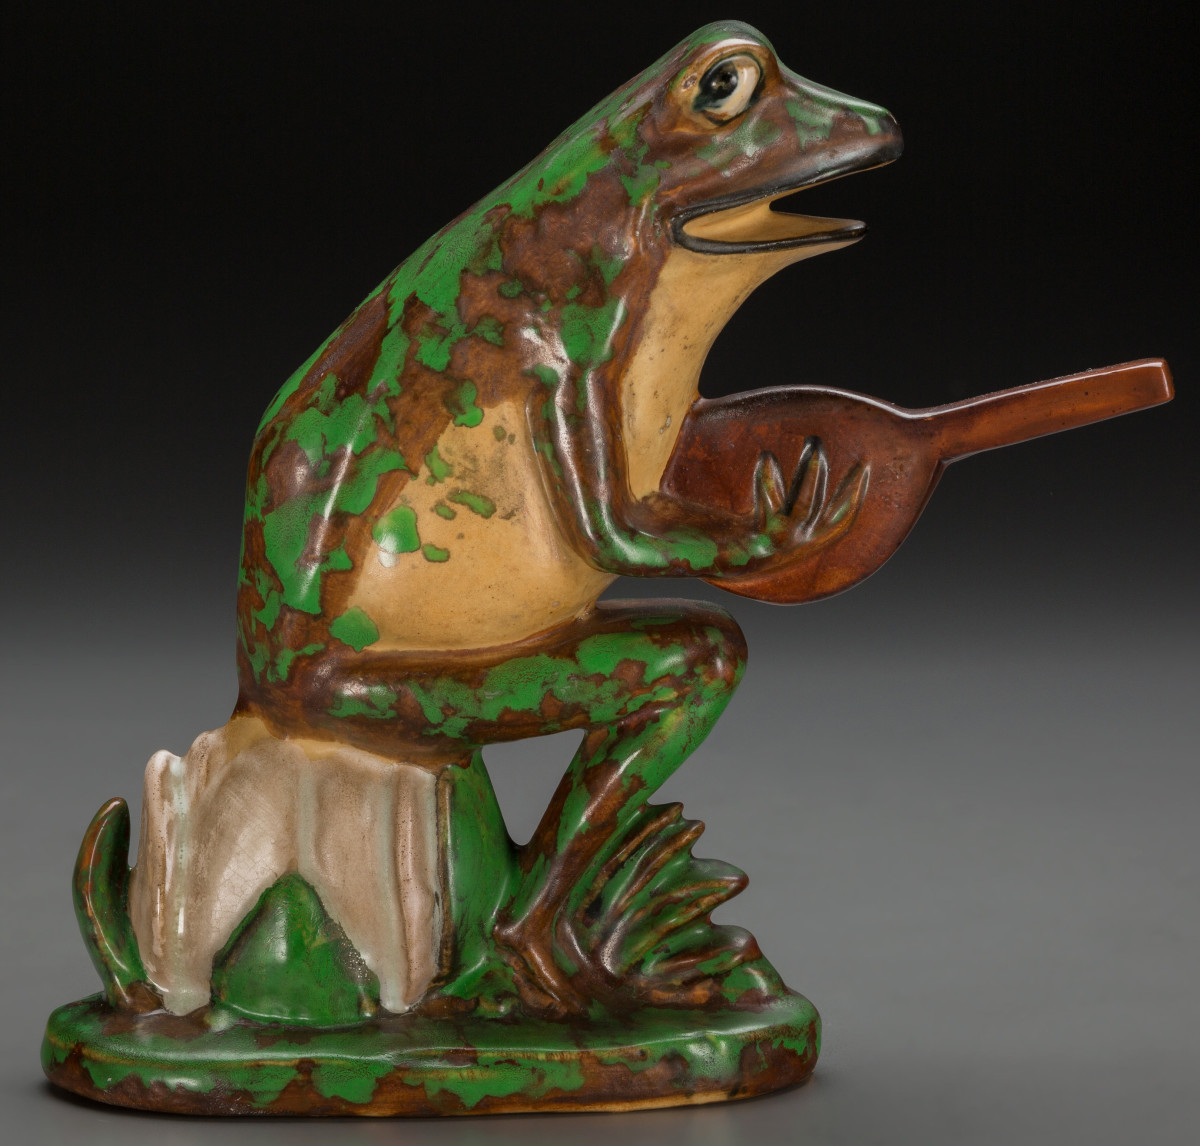 """This cheeky garden ornament features a frog playing a banjo - the instrument many people think they sound like. Zanesville, Ohio, circa 1925, """"Weller Pottery"""" mark (shown in the photo below), 7-1/4"""" h. This sold at auction in 2016 for $1,875."""